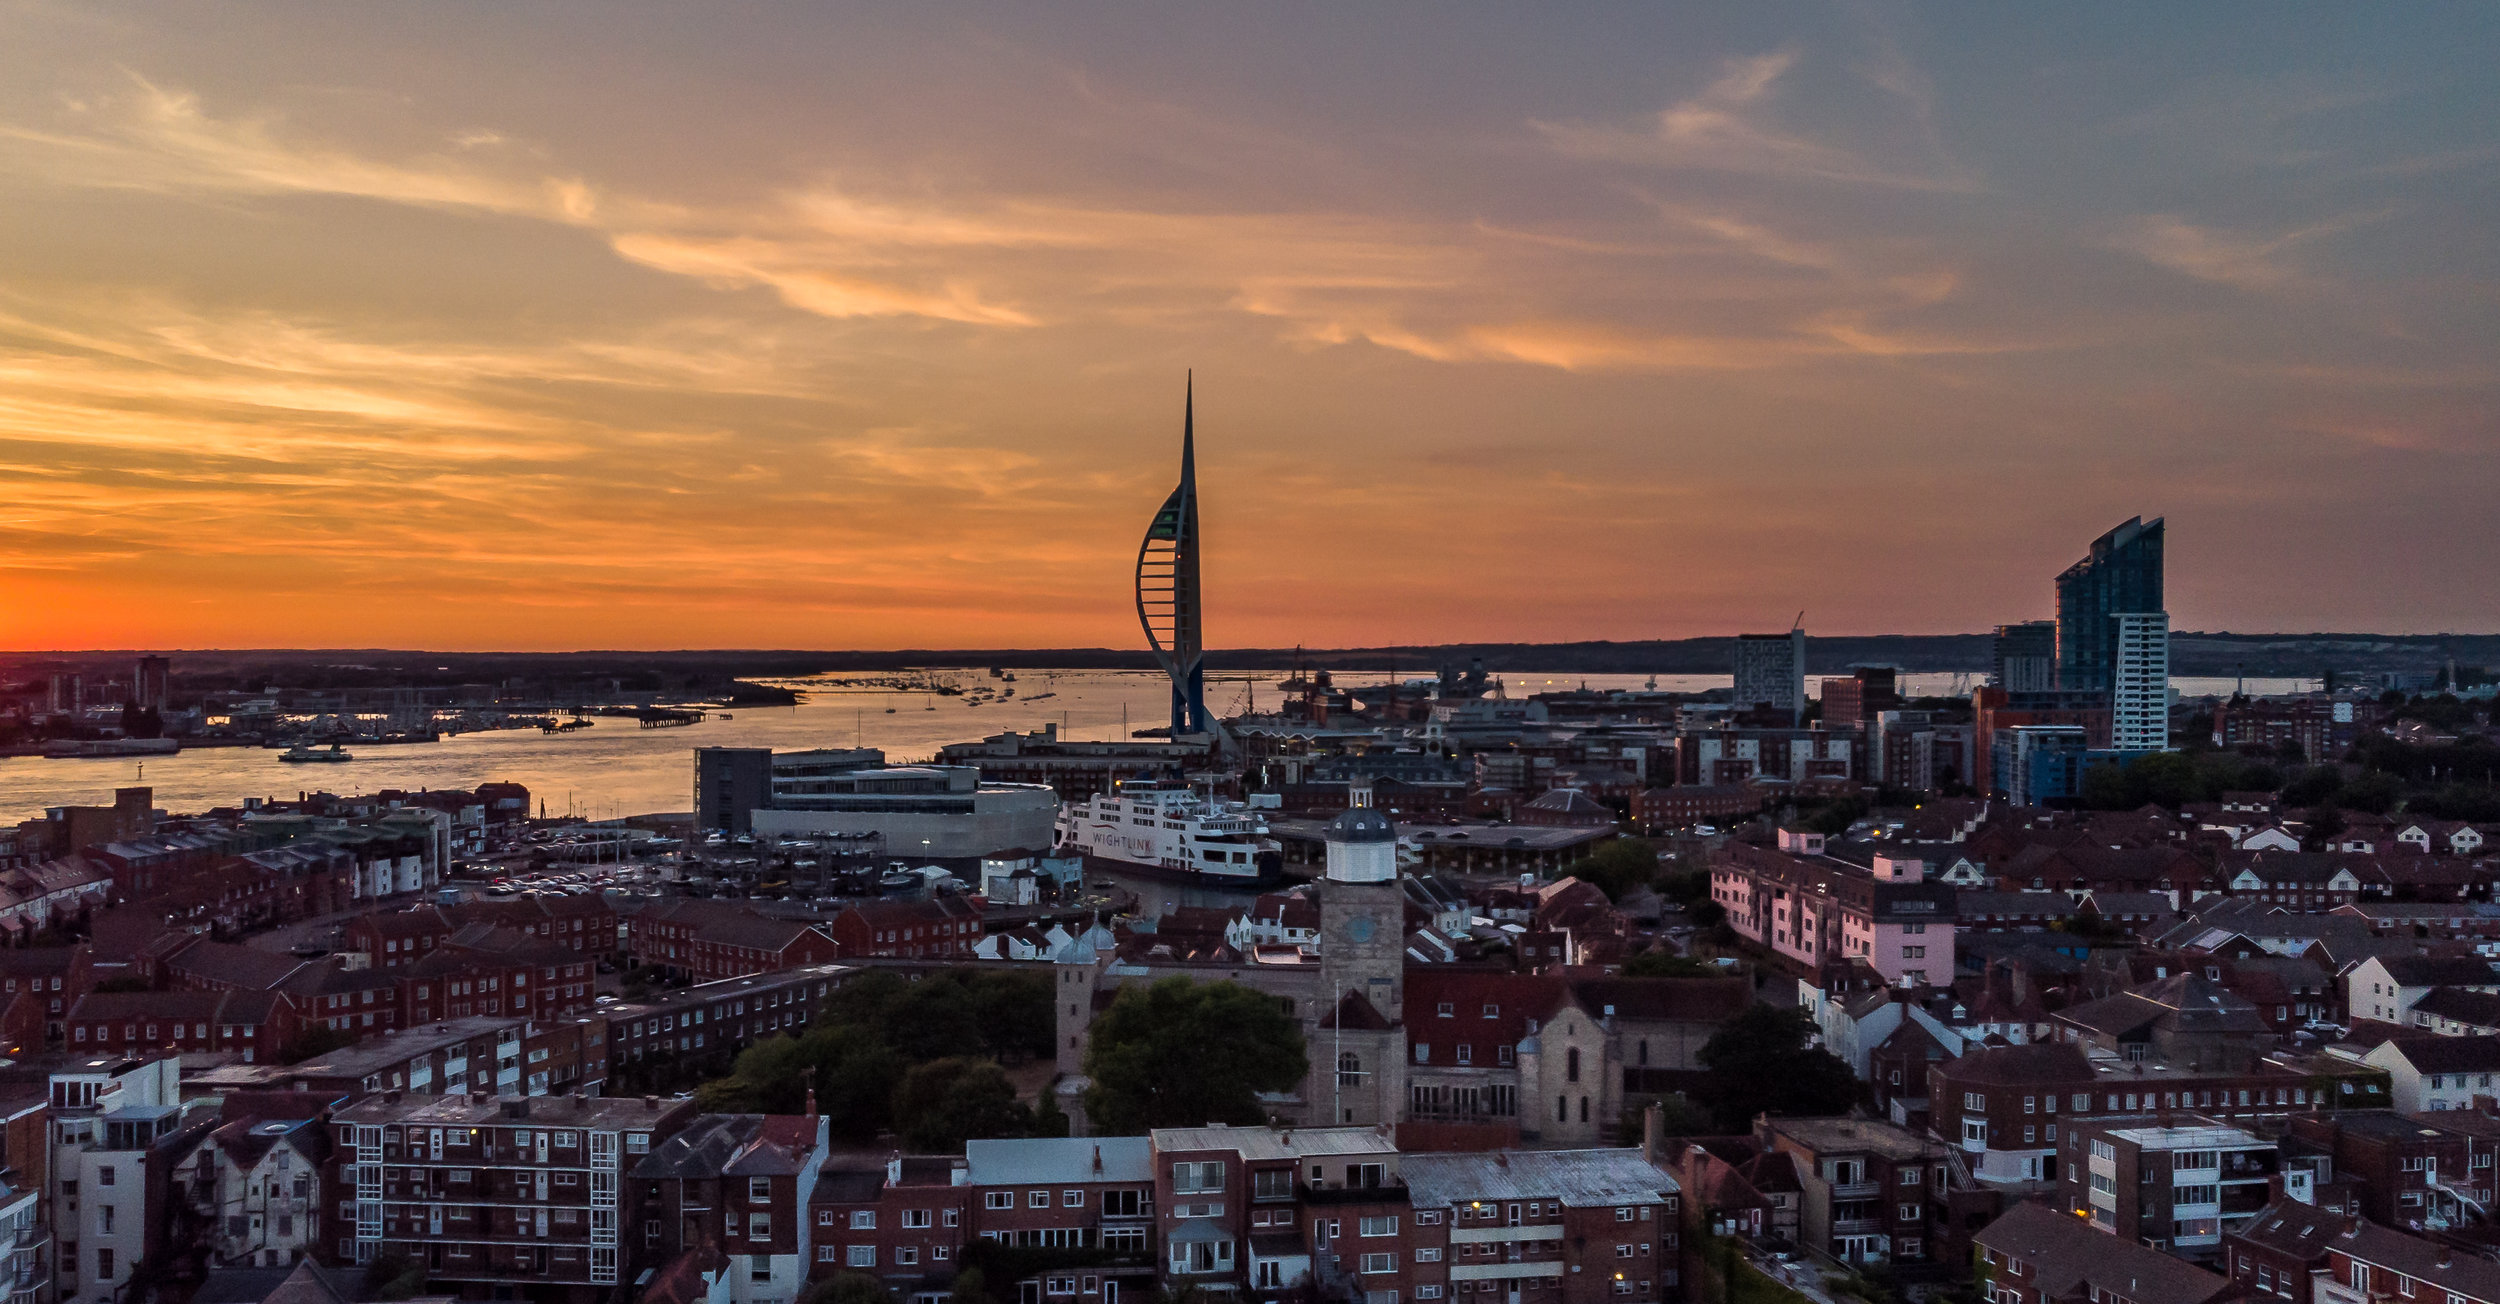 Sunset Over Old Portsmouth - Portsmouth, UK